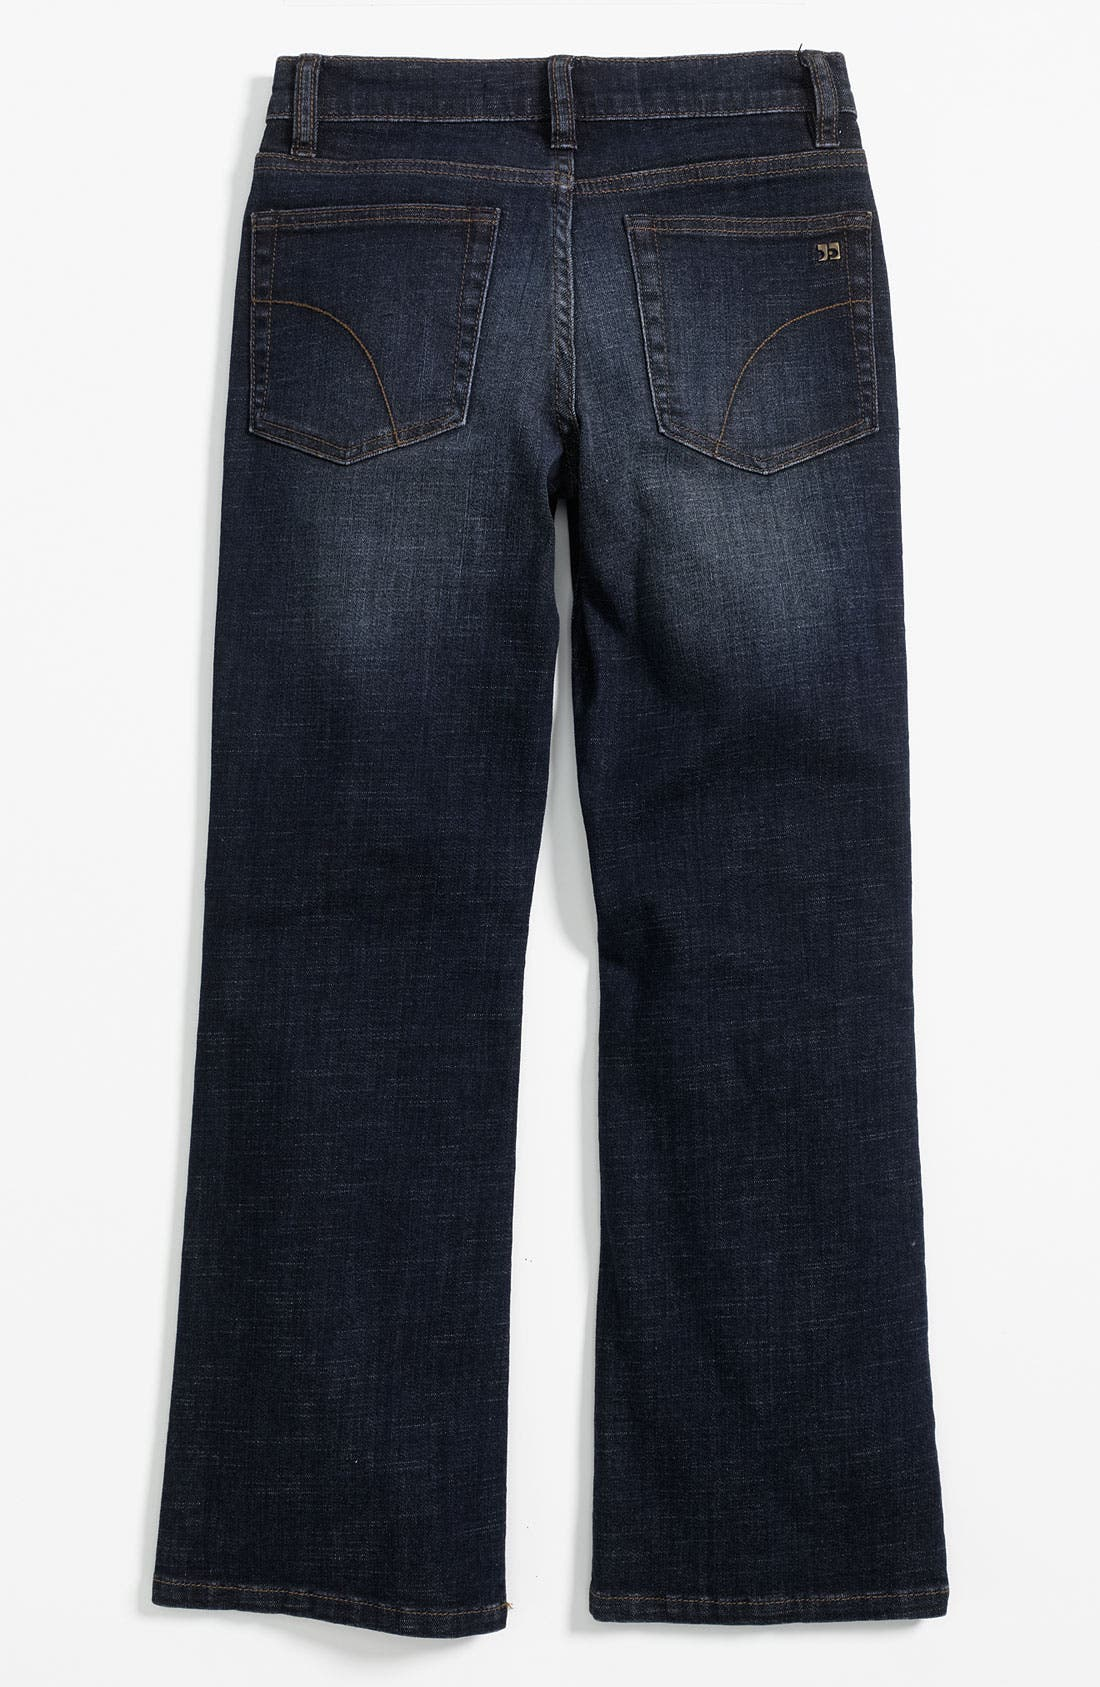 Main Image - Joe's 'Rebel' Jeans (Big Boys)